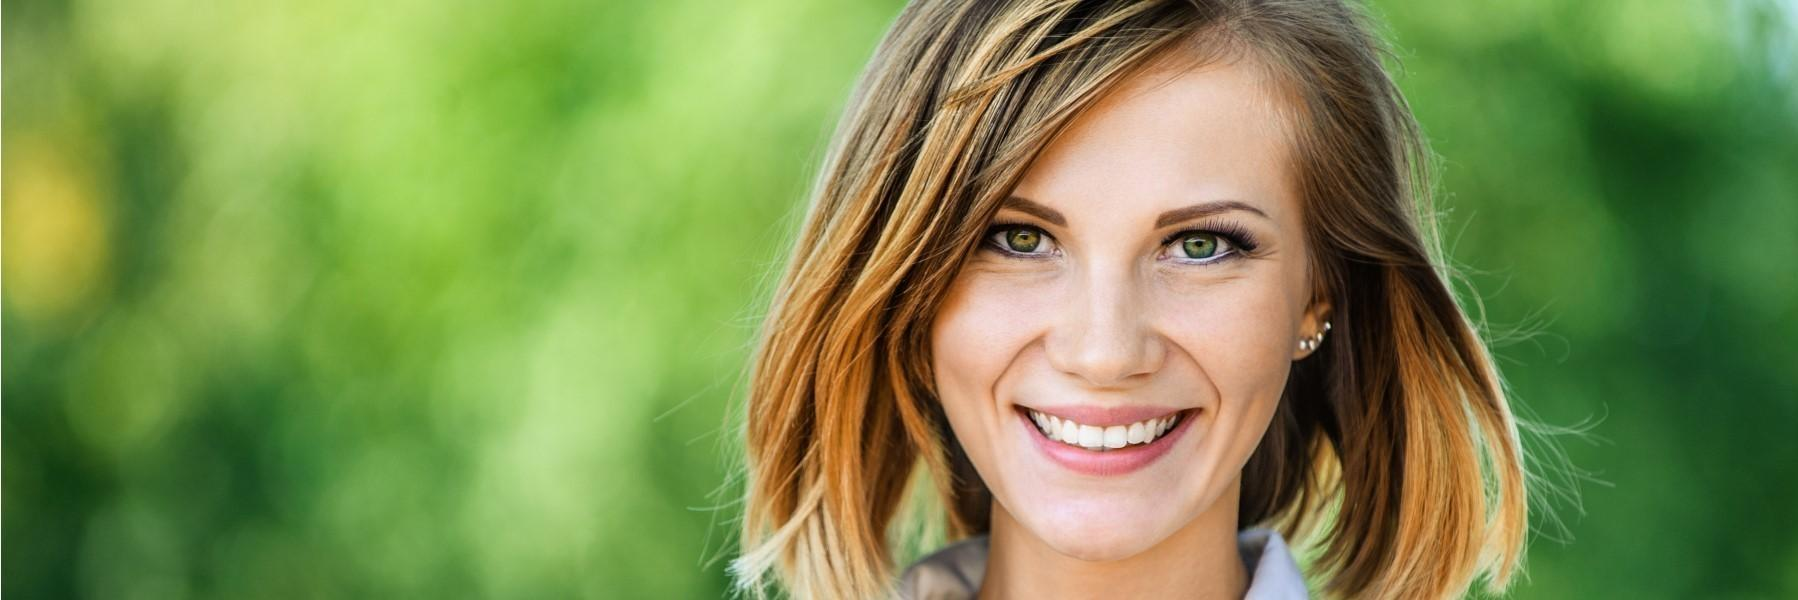 Young woman smiling l Dental Implants in Moline, IL